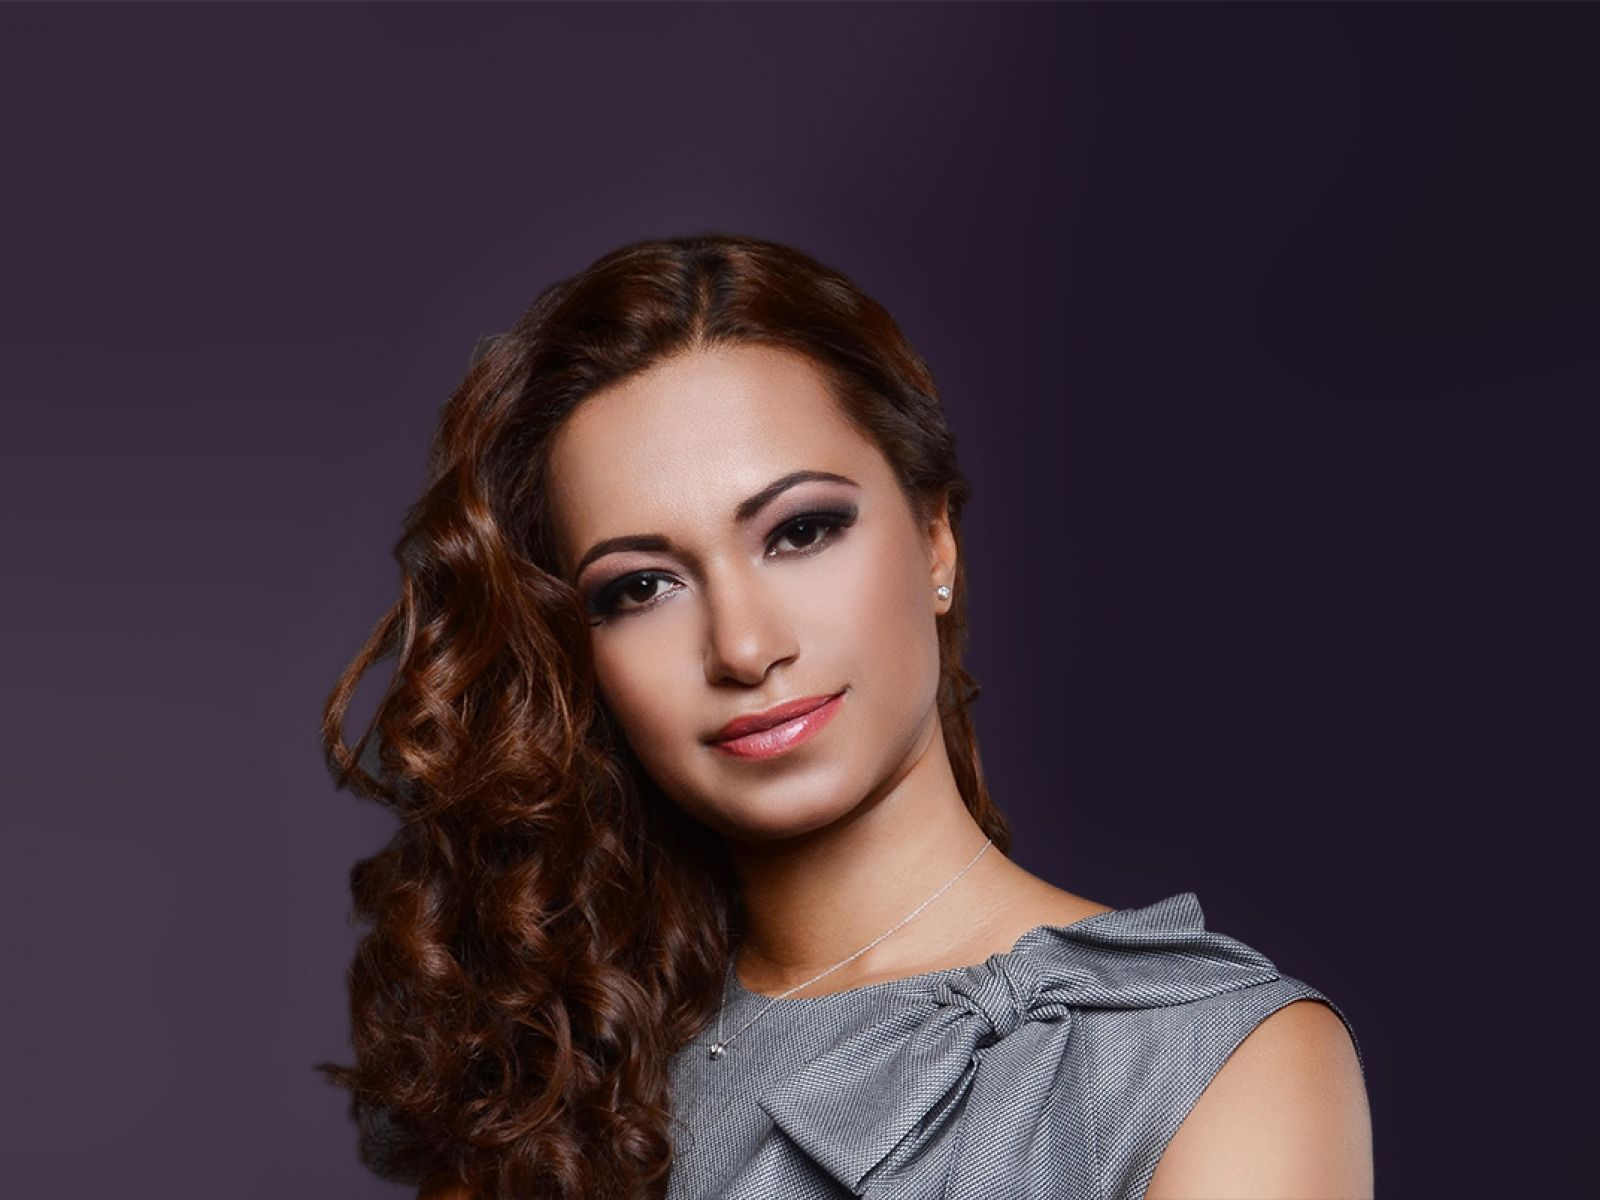 Beatrice Dumitrascu, confirmed speaker at BR's Realty Forum